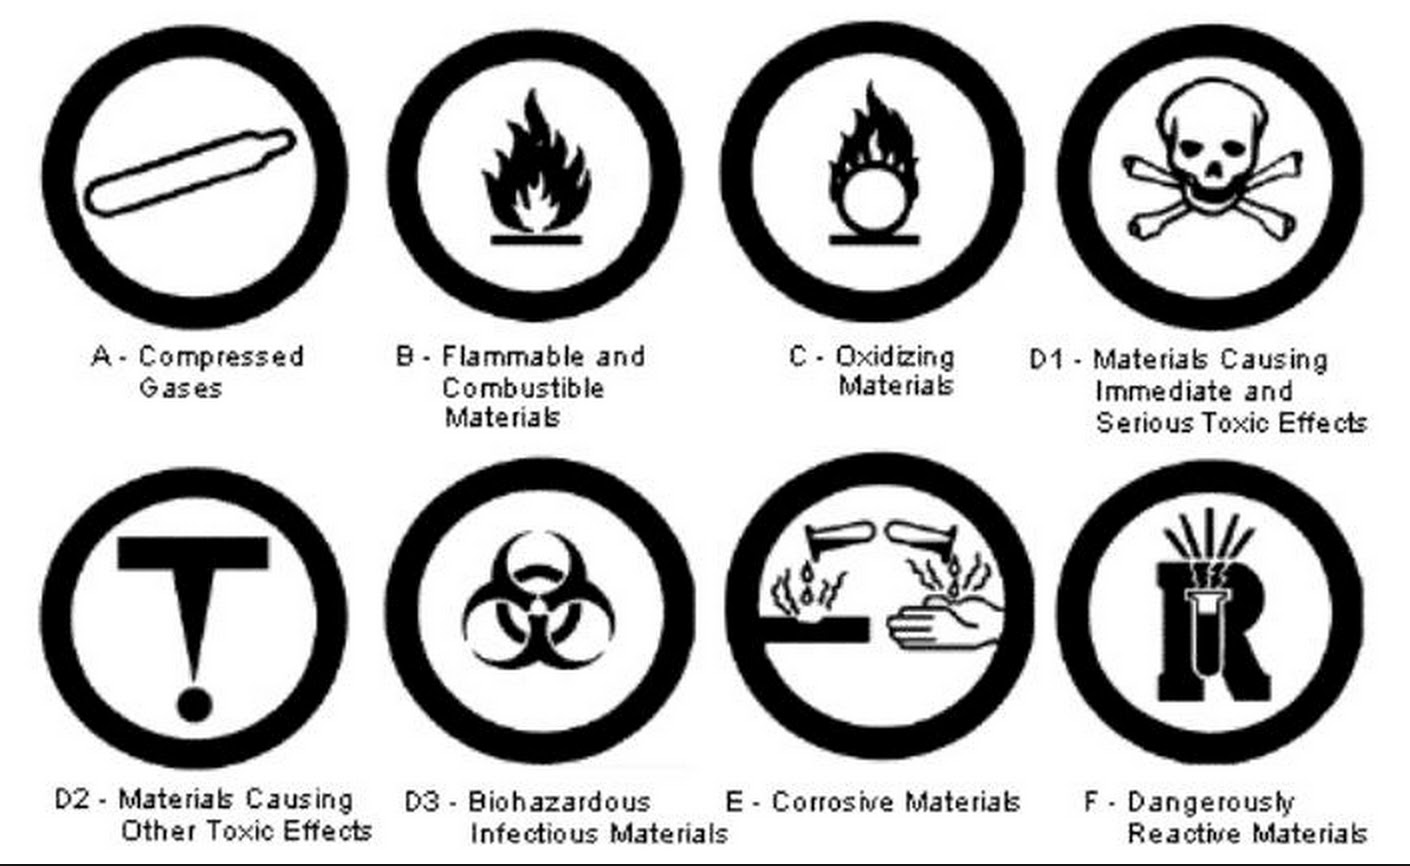 Scientific safety symbols image collections symbol and sign ideas drawlins september 2015 8a science no class today hw finish transferring all the symbols from each biocorpaavc